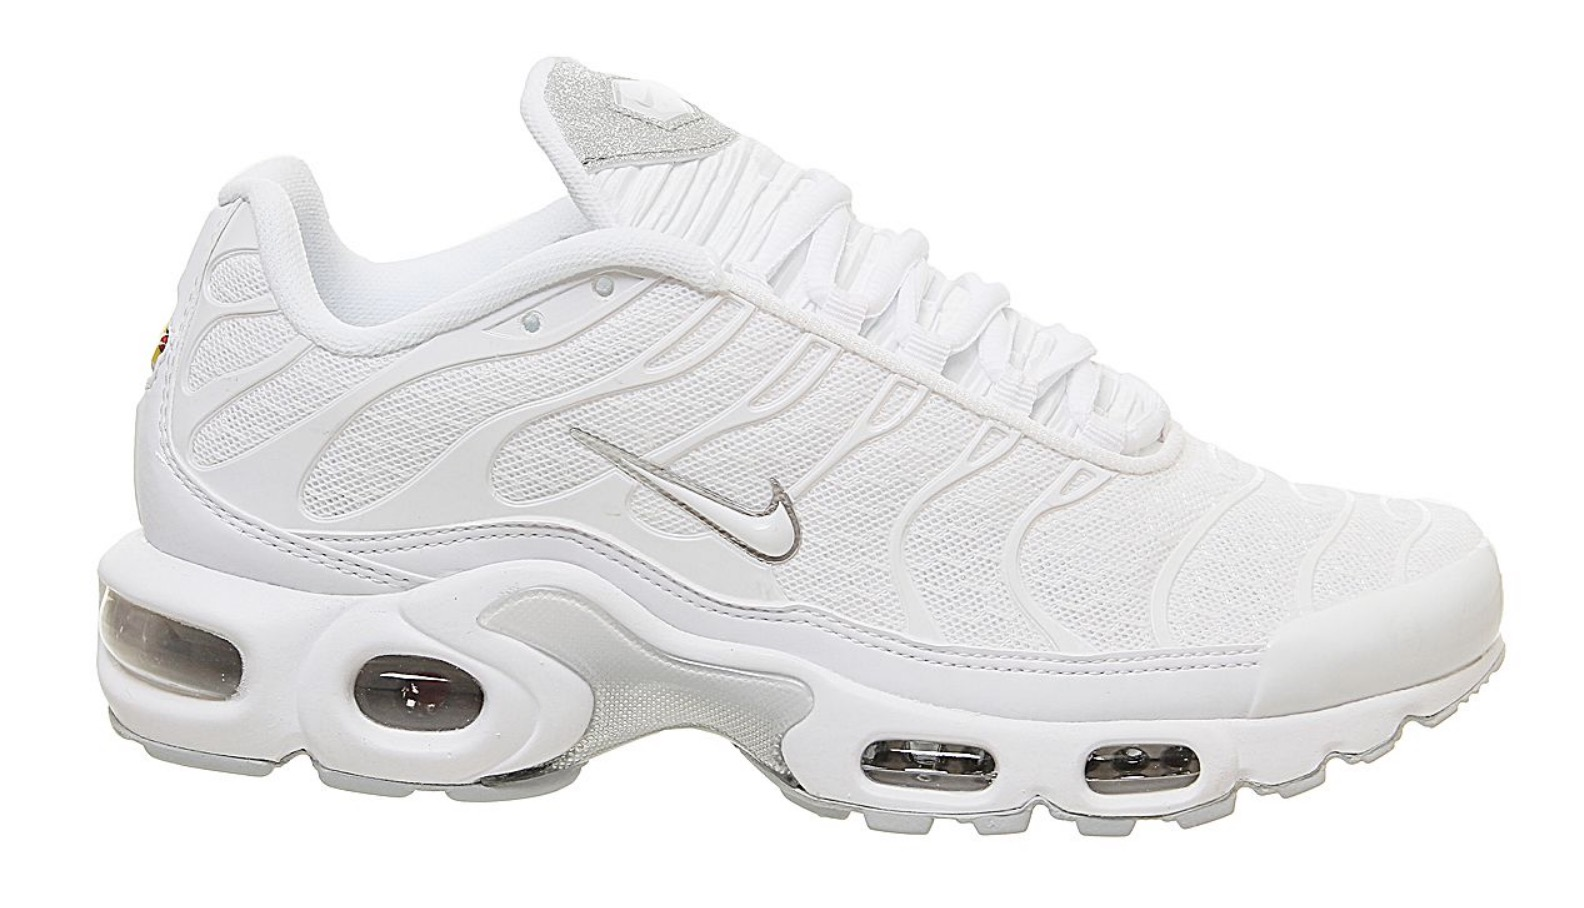 Nike Air Max Plus White Glitter